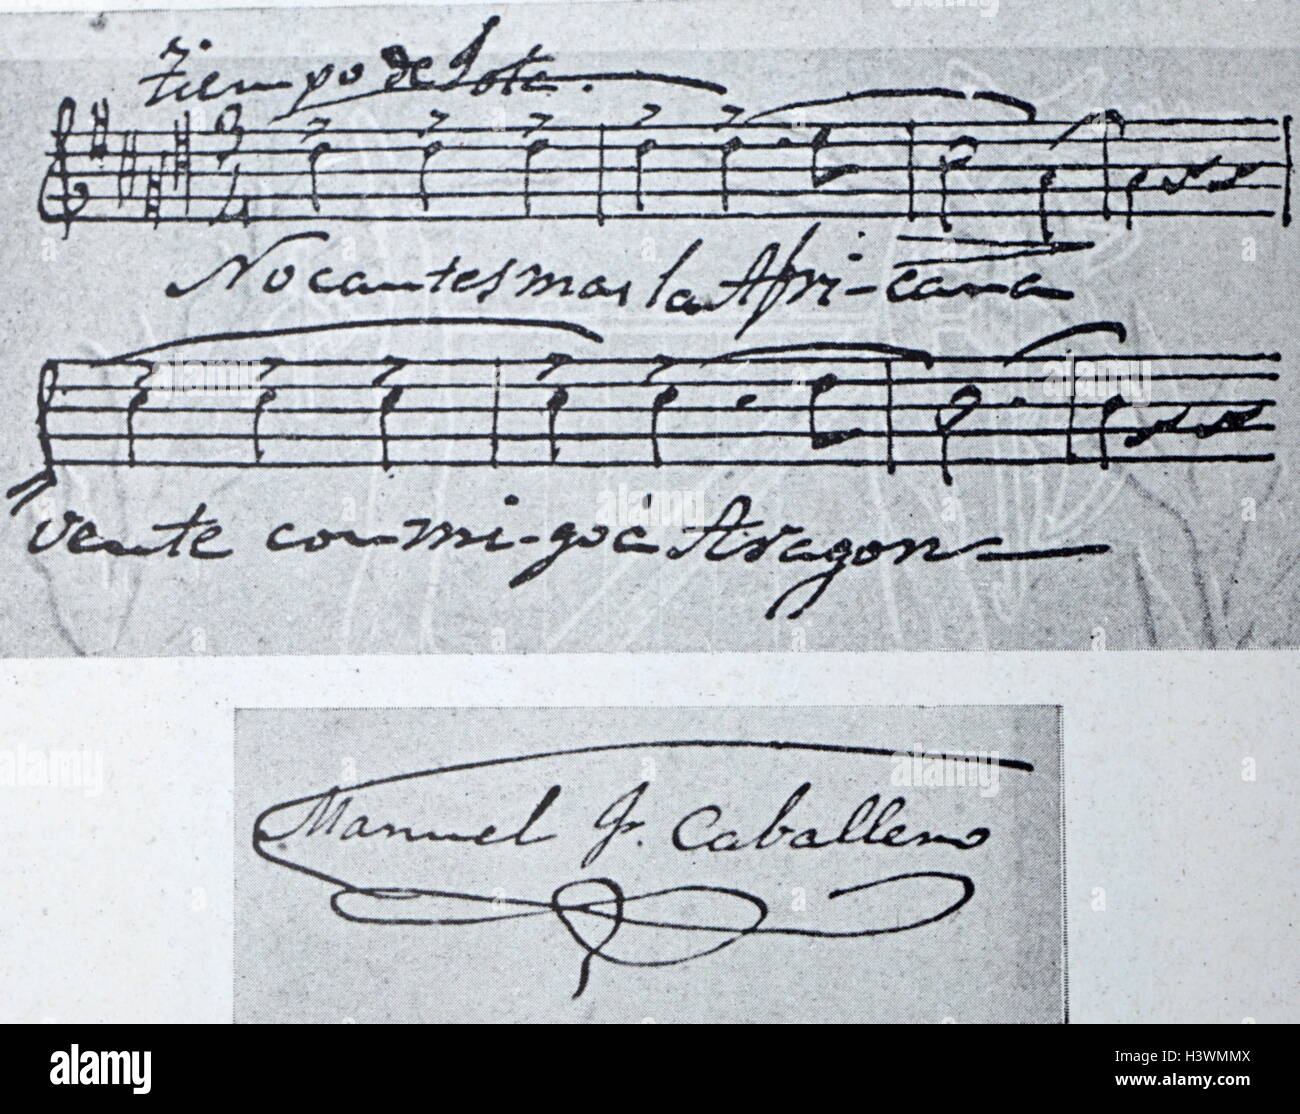 Sheet music and autograph of Manuel Fernández Caballero (1835-1906) a Spanish composer. Dated 19th Century - Stock Image